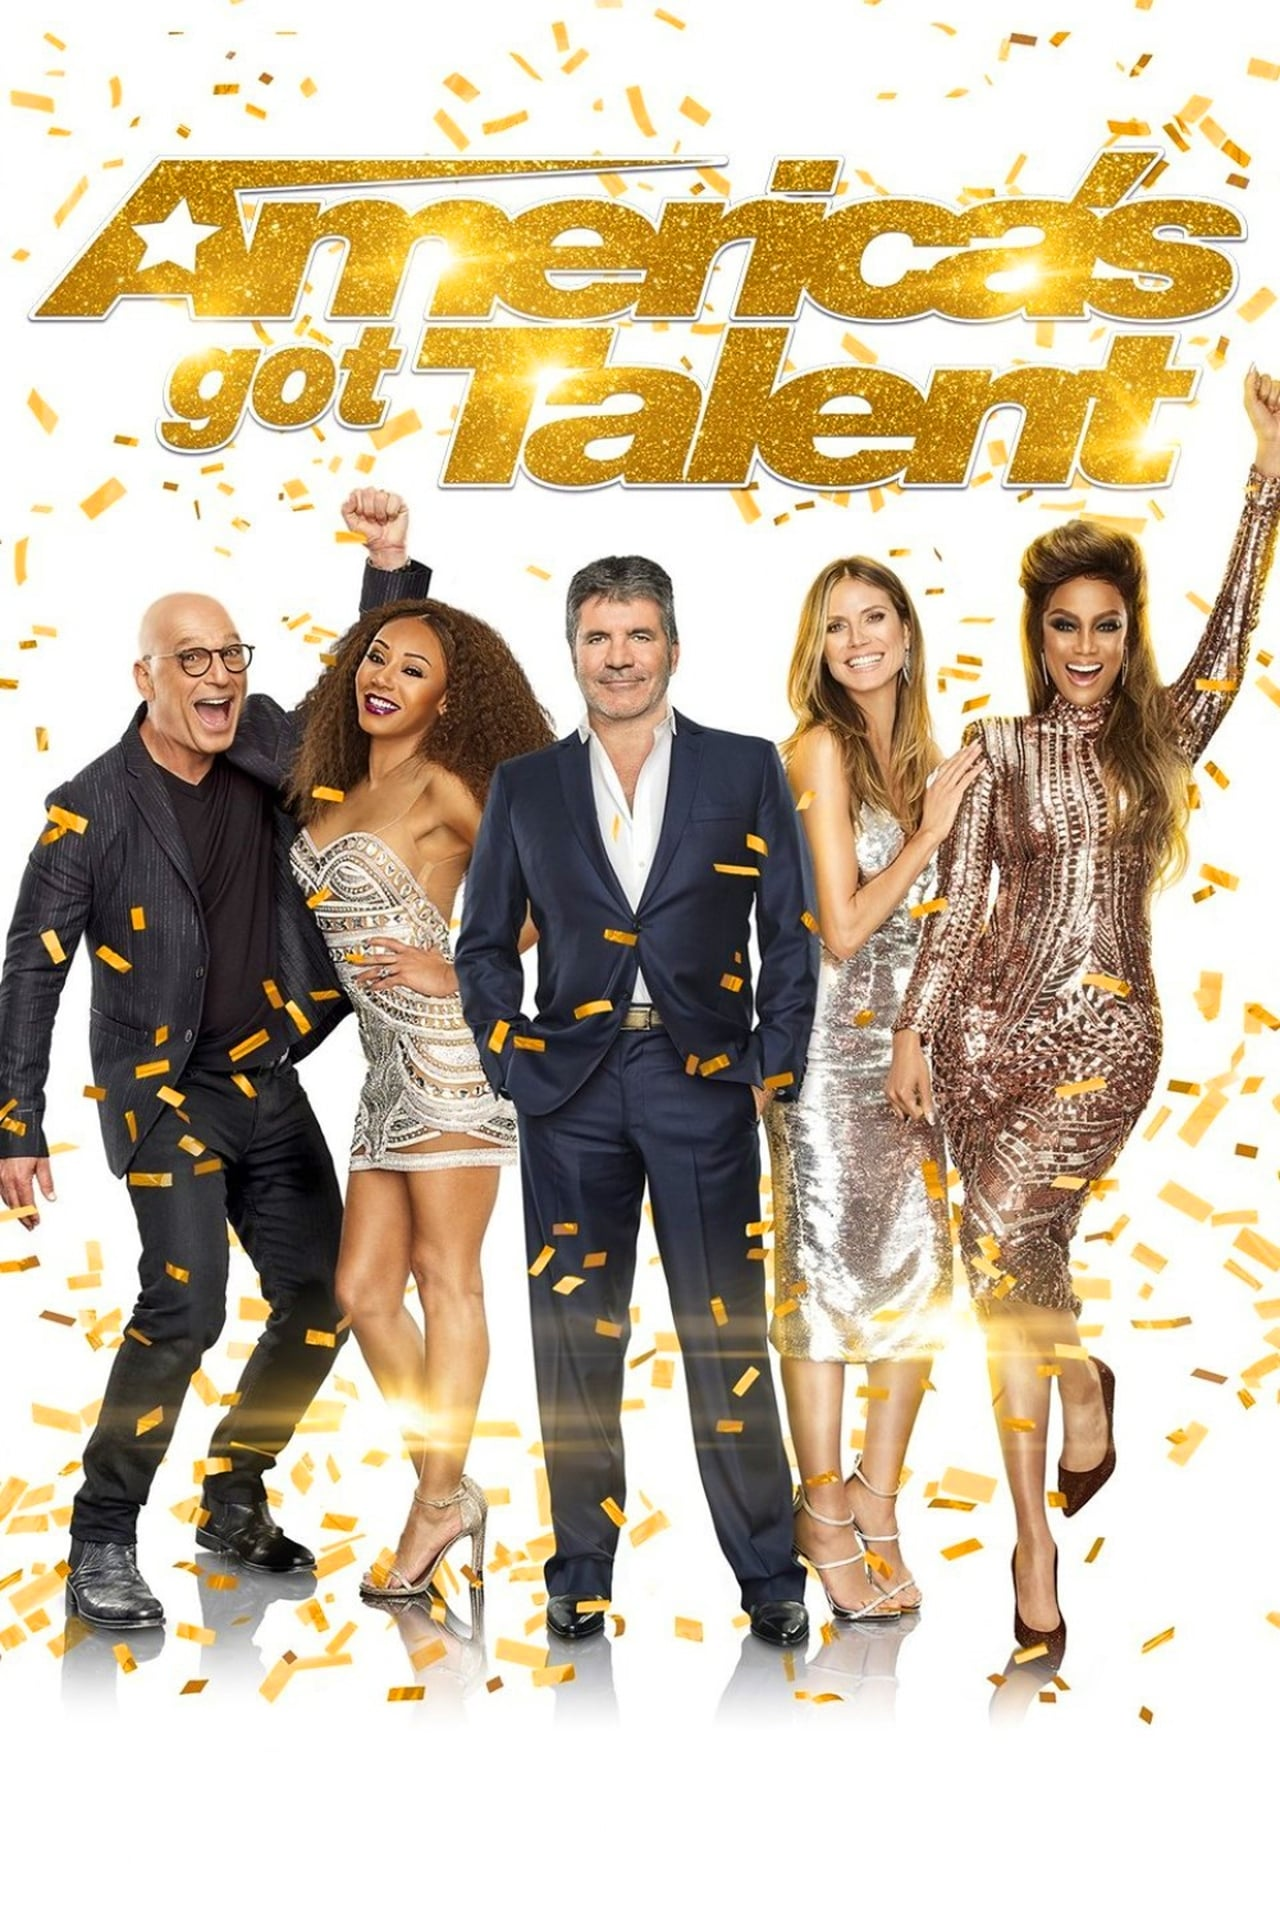 Putlocker America's Got Talent Season 10 (2015)